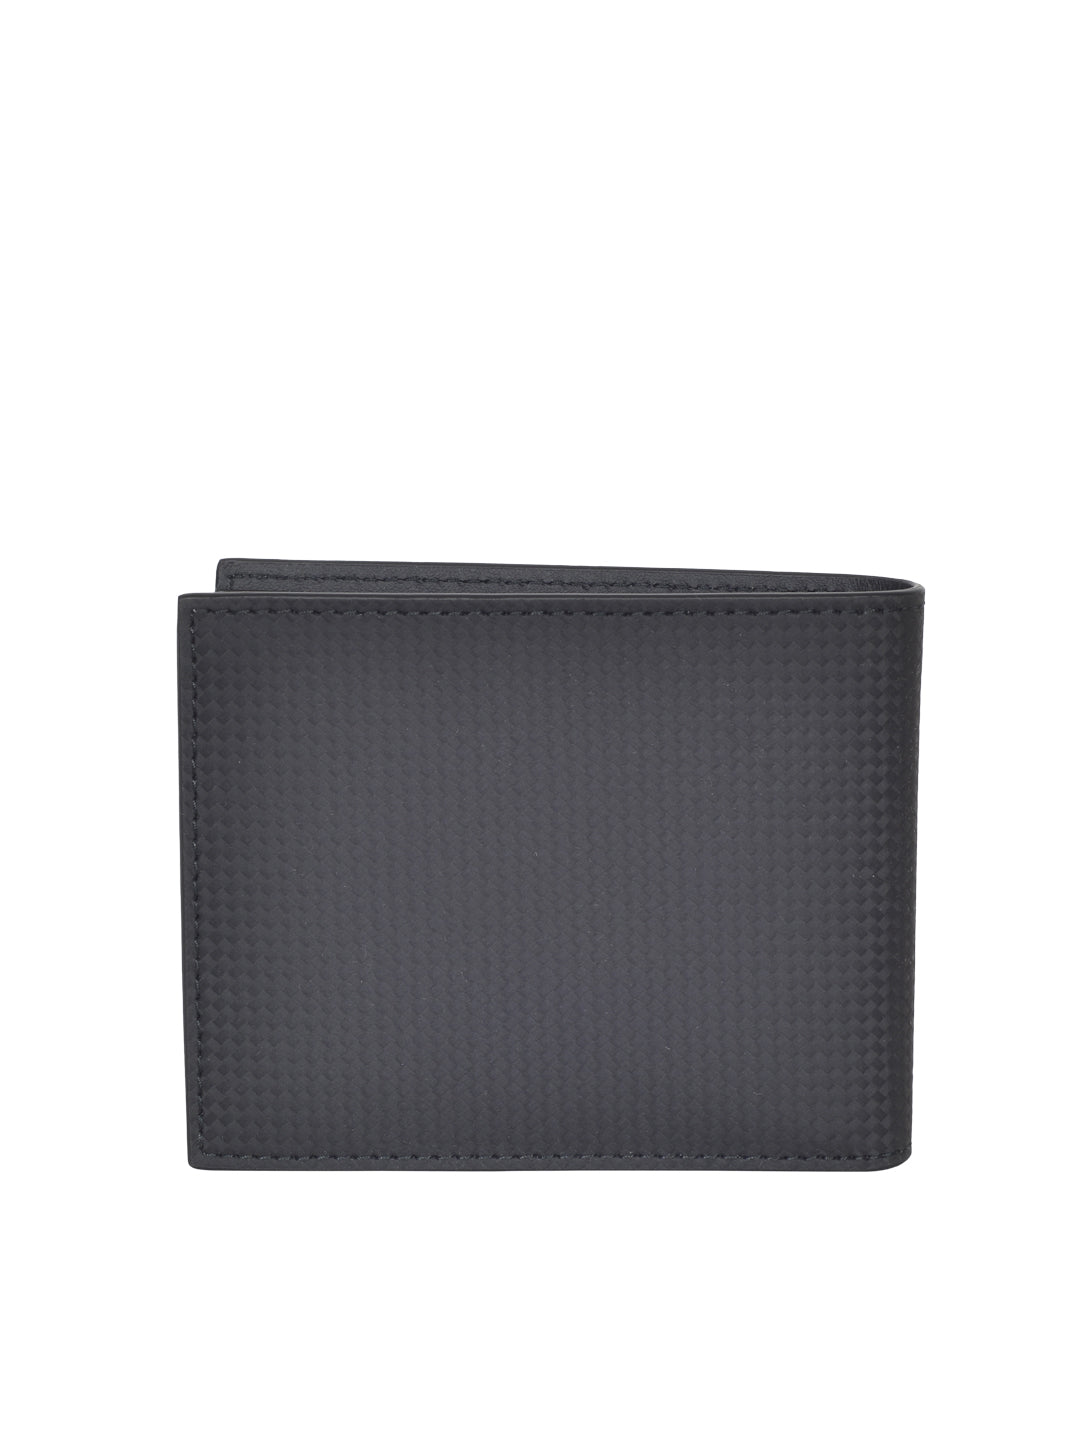 MONT BLANC MEN'S  Westside Extreme Black Leather 8CC Wallet